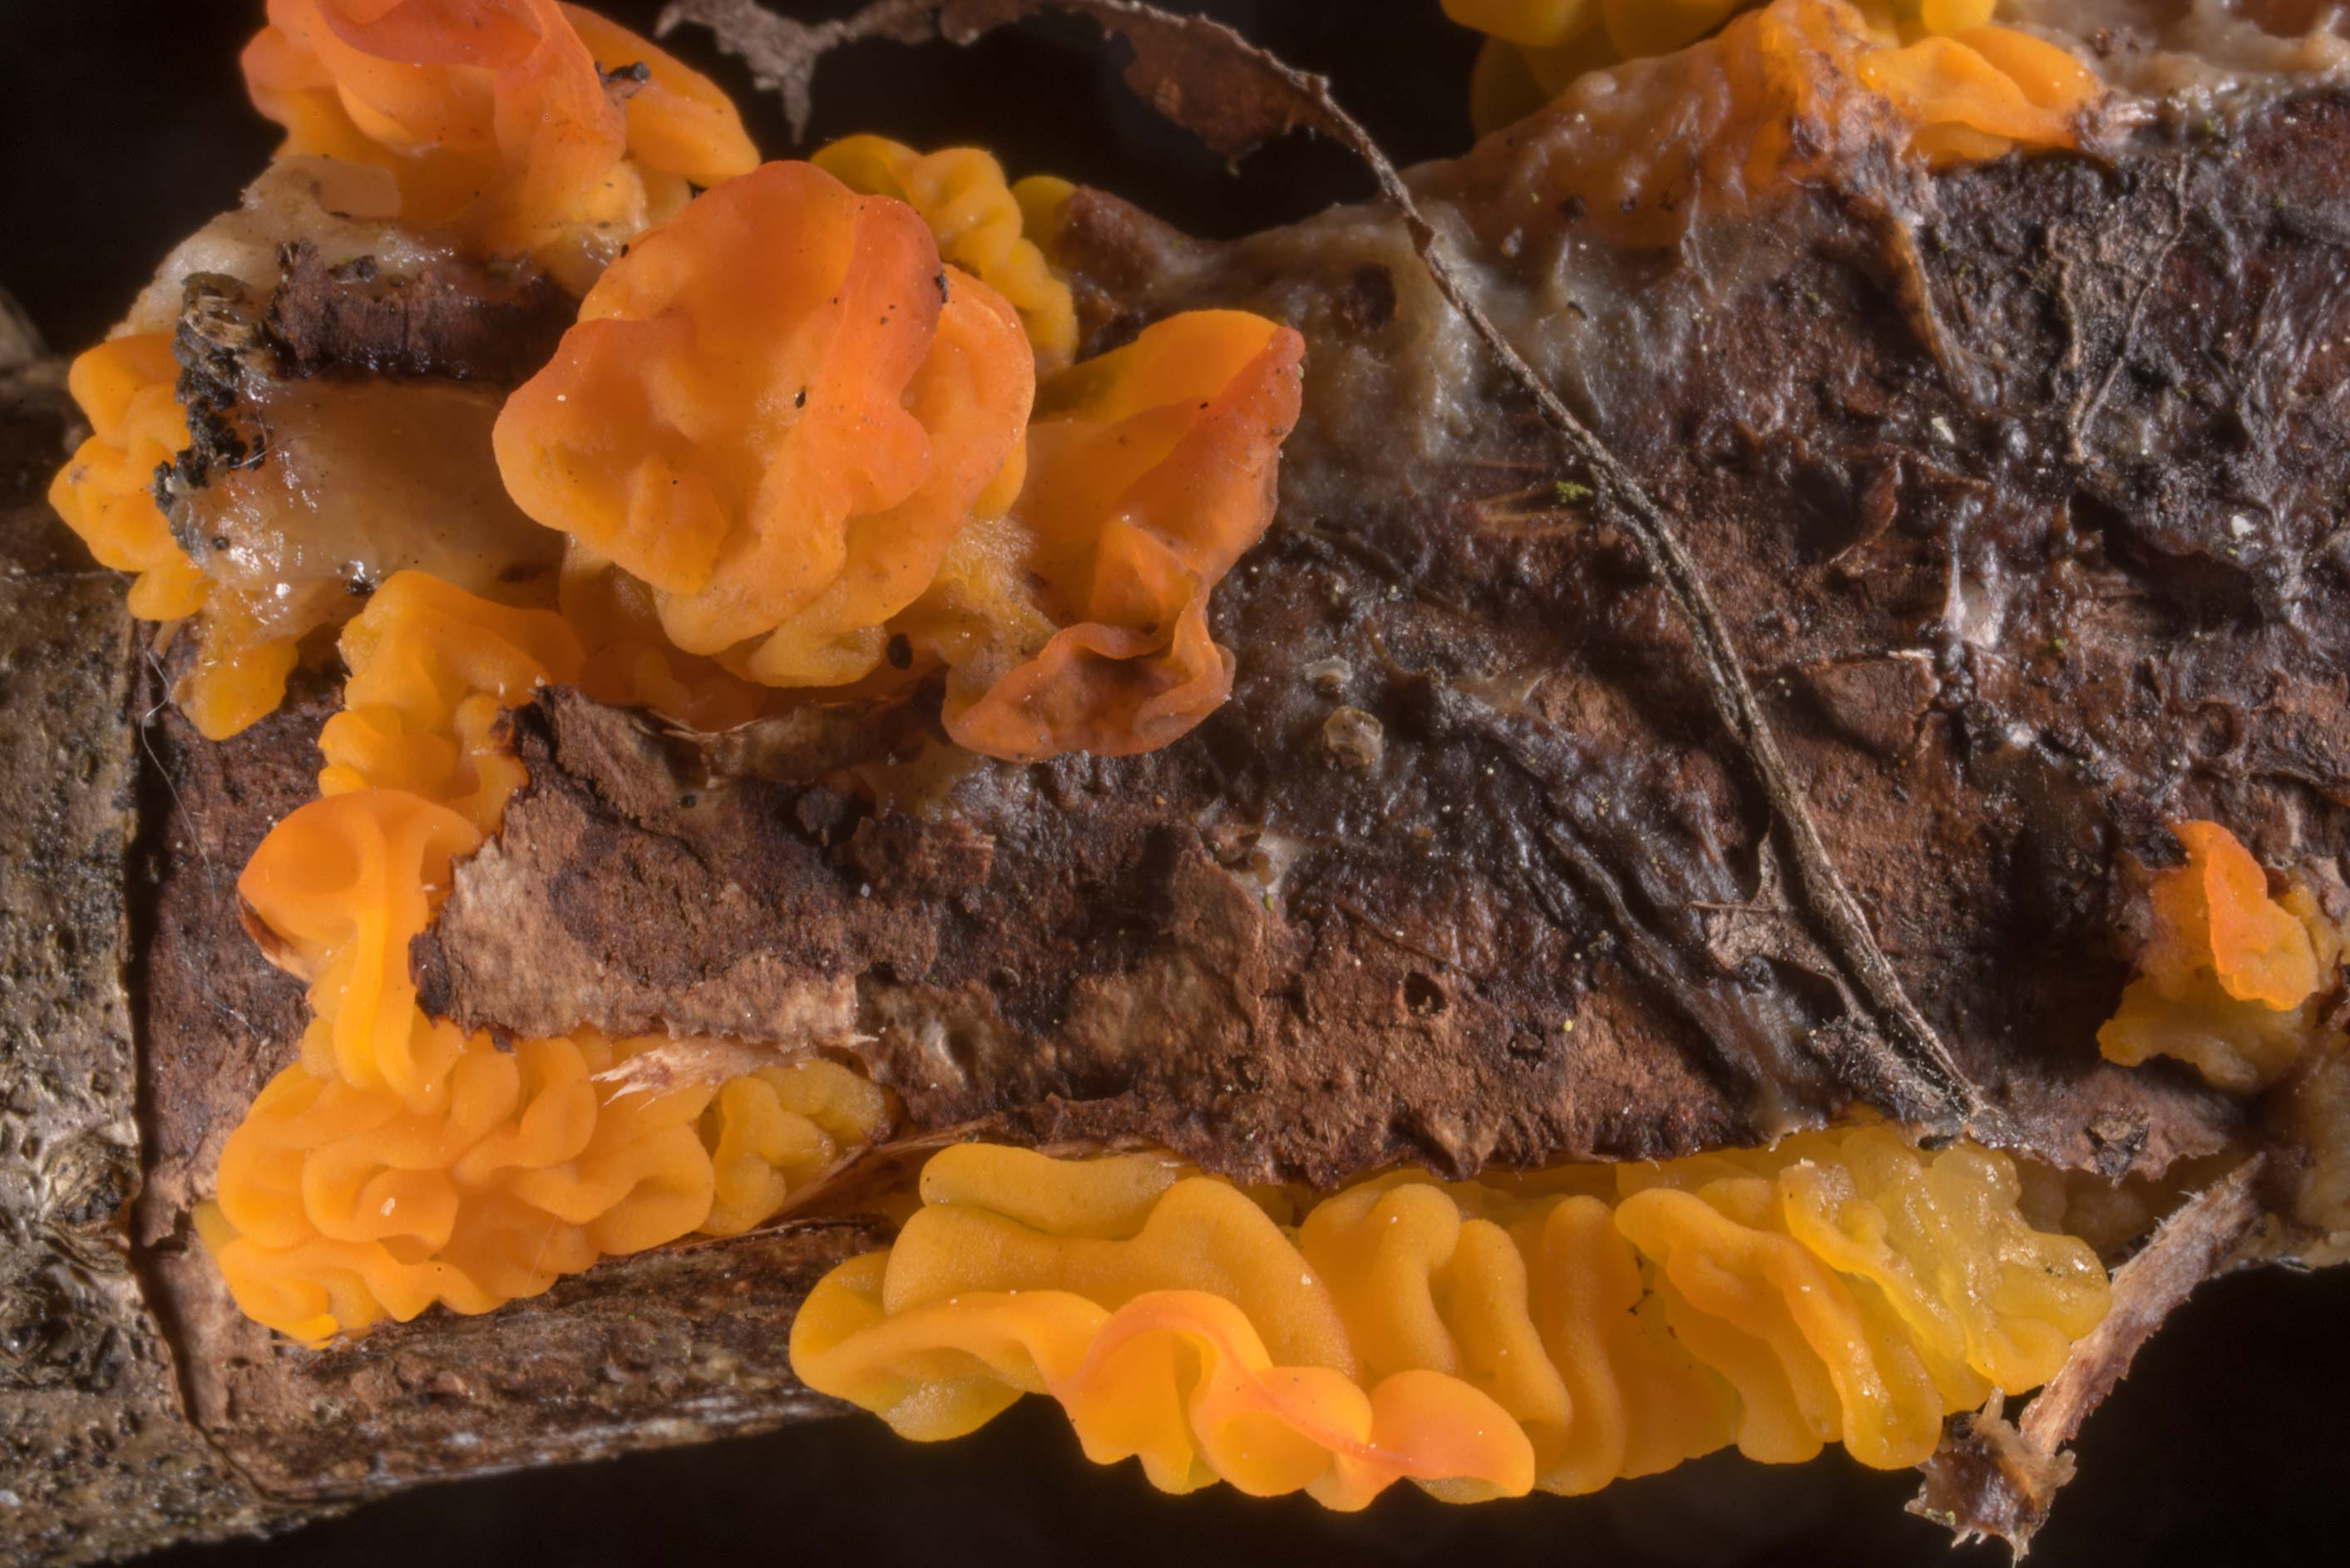 Yellow brain fungus (Tremella mesenterica) on a...West from St.Petersburg, Russia